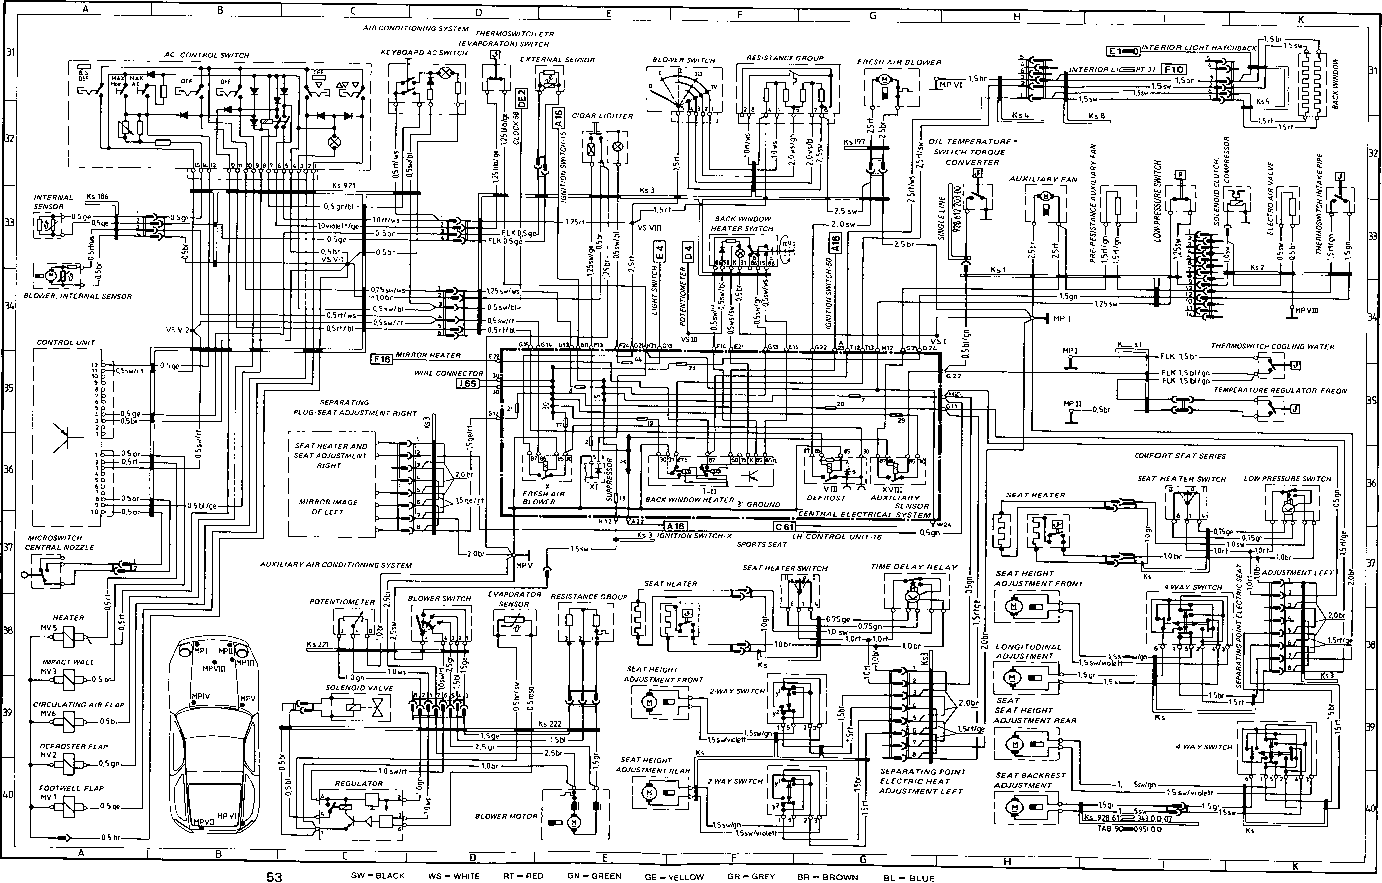 928 S4 Wiring Diagram - Wiring Diagram